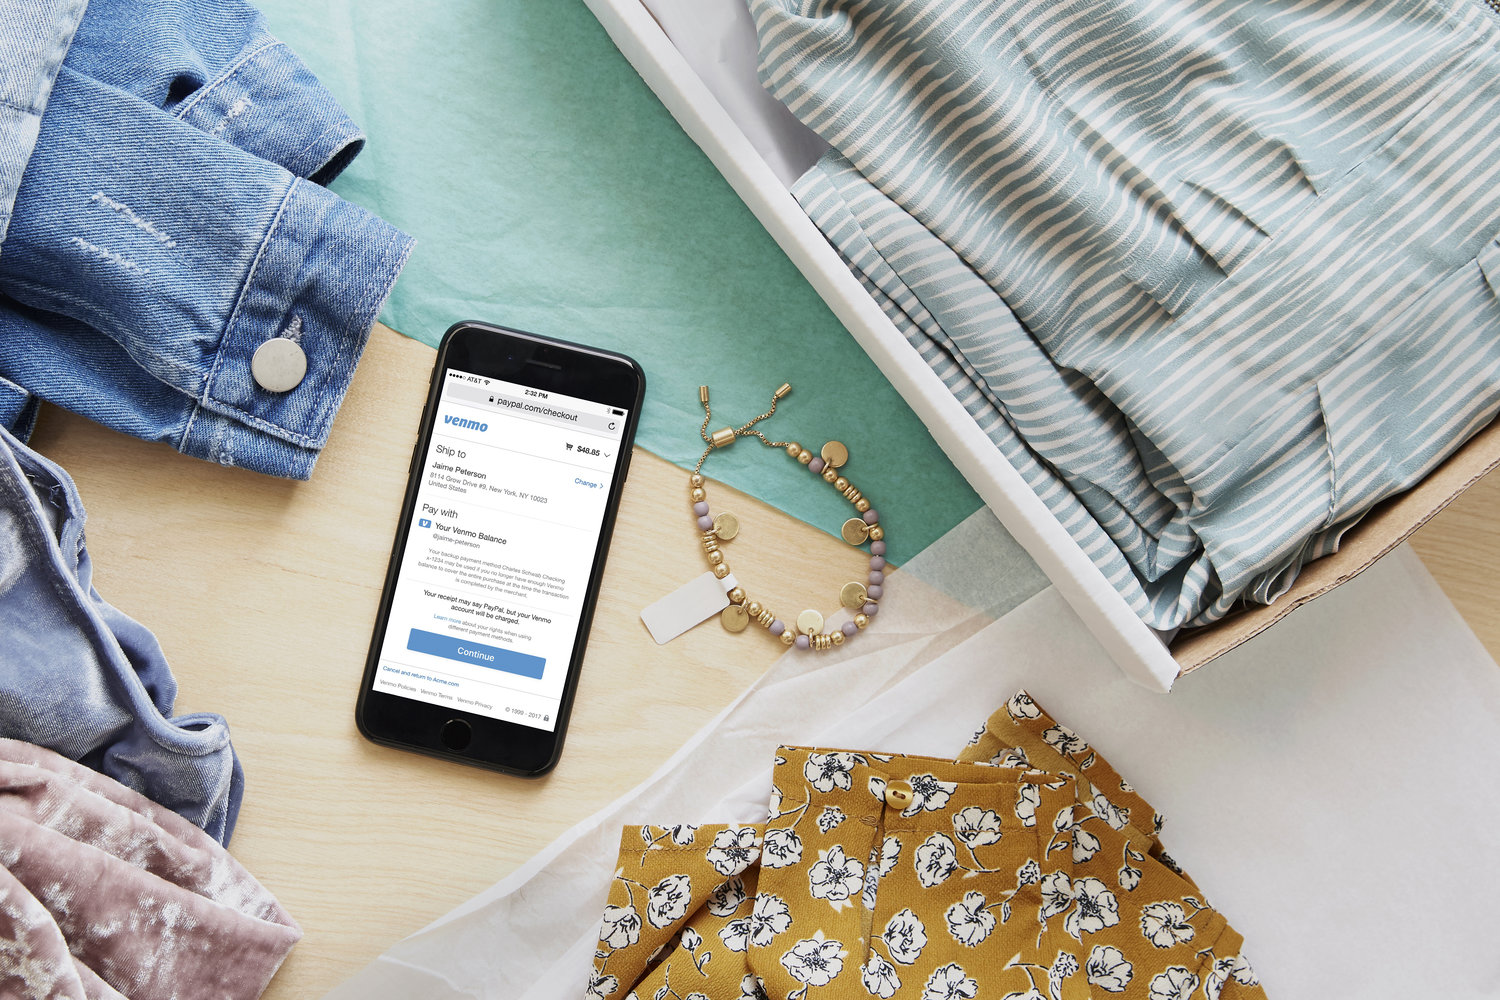 Venmo users can now shop online anywhere PayPal is accepted in the